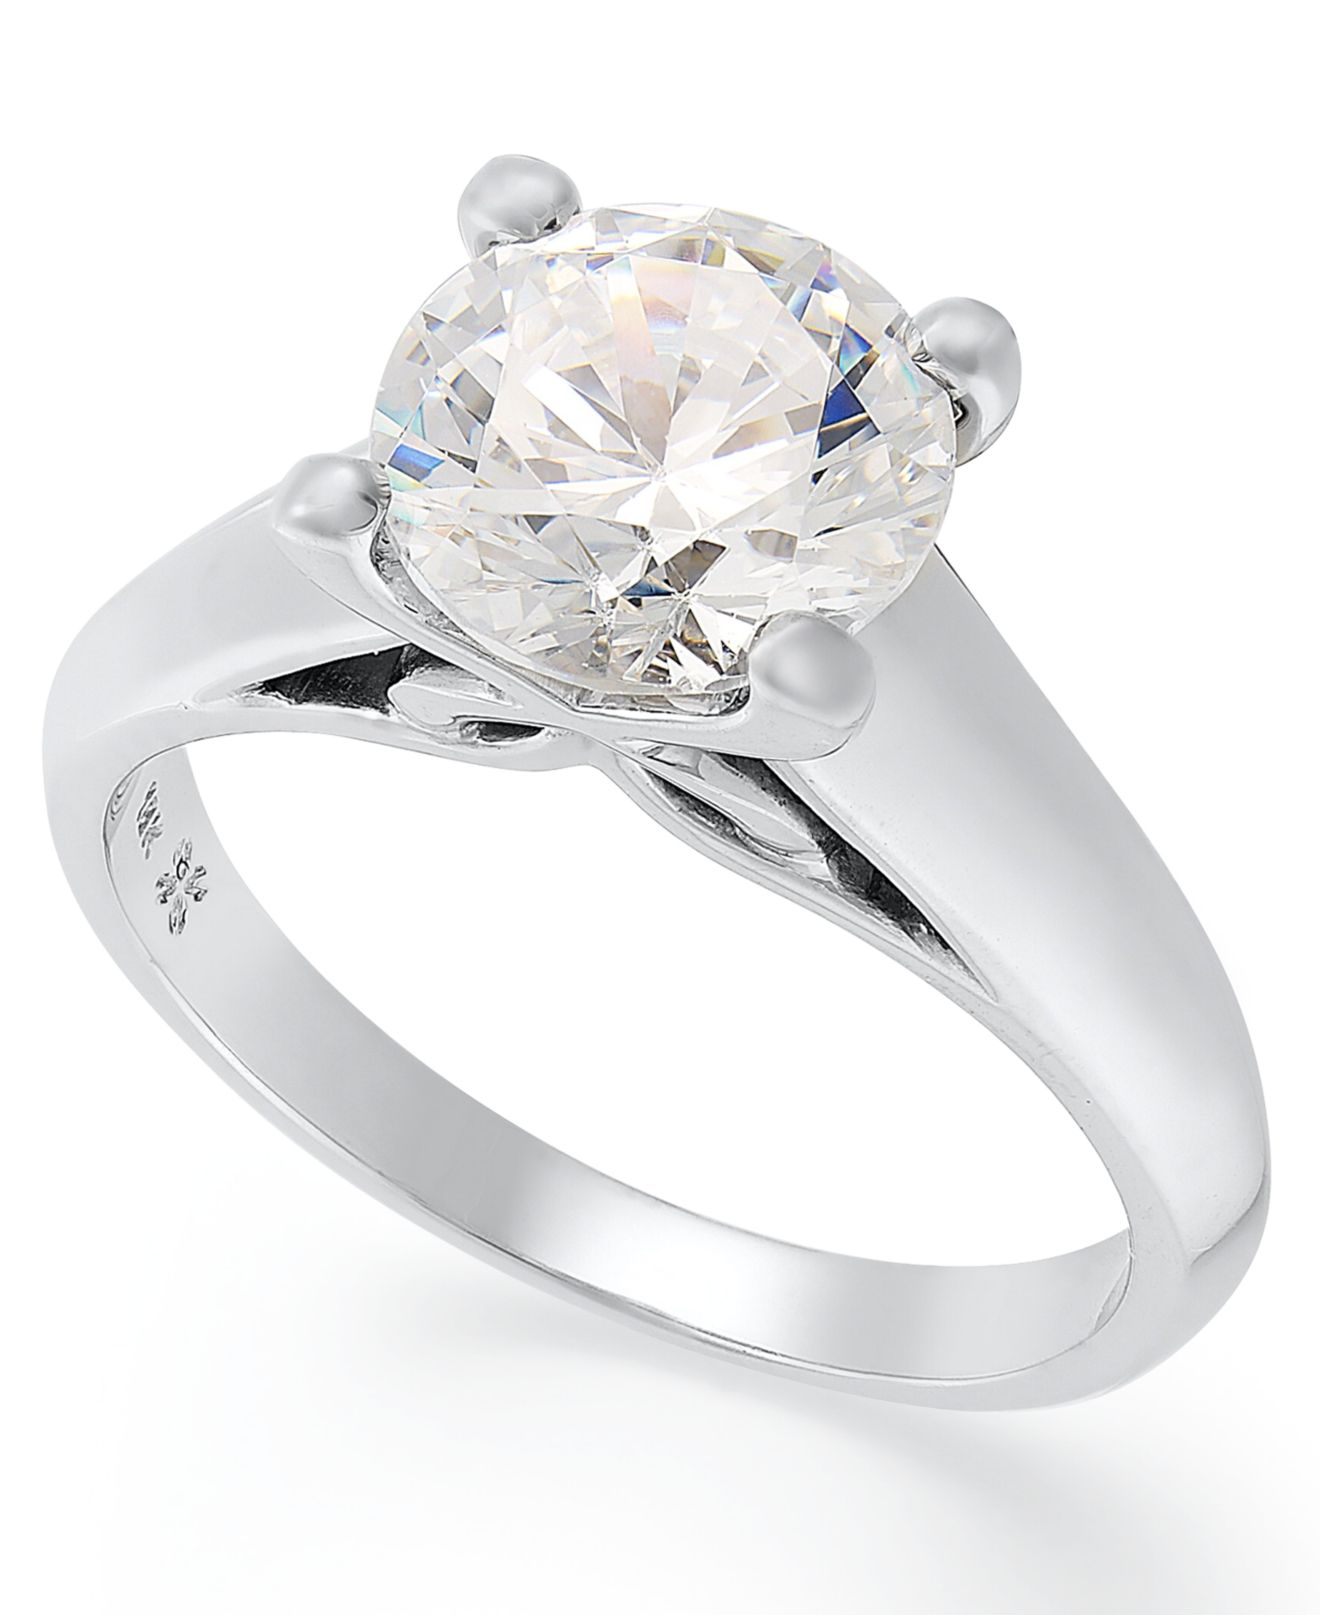 x3 certified solitaire engagement ring in 18k